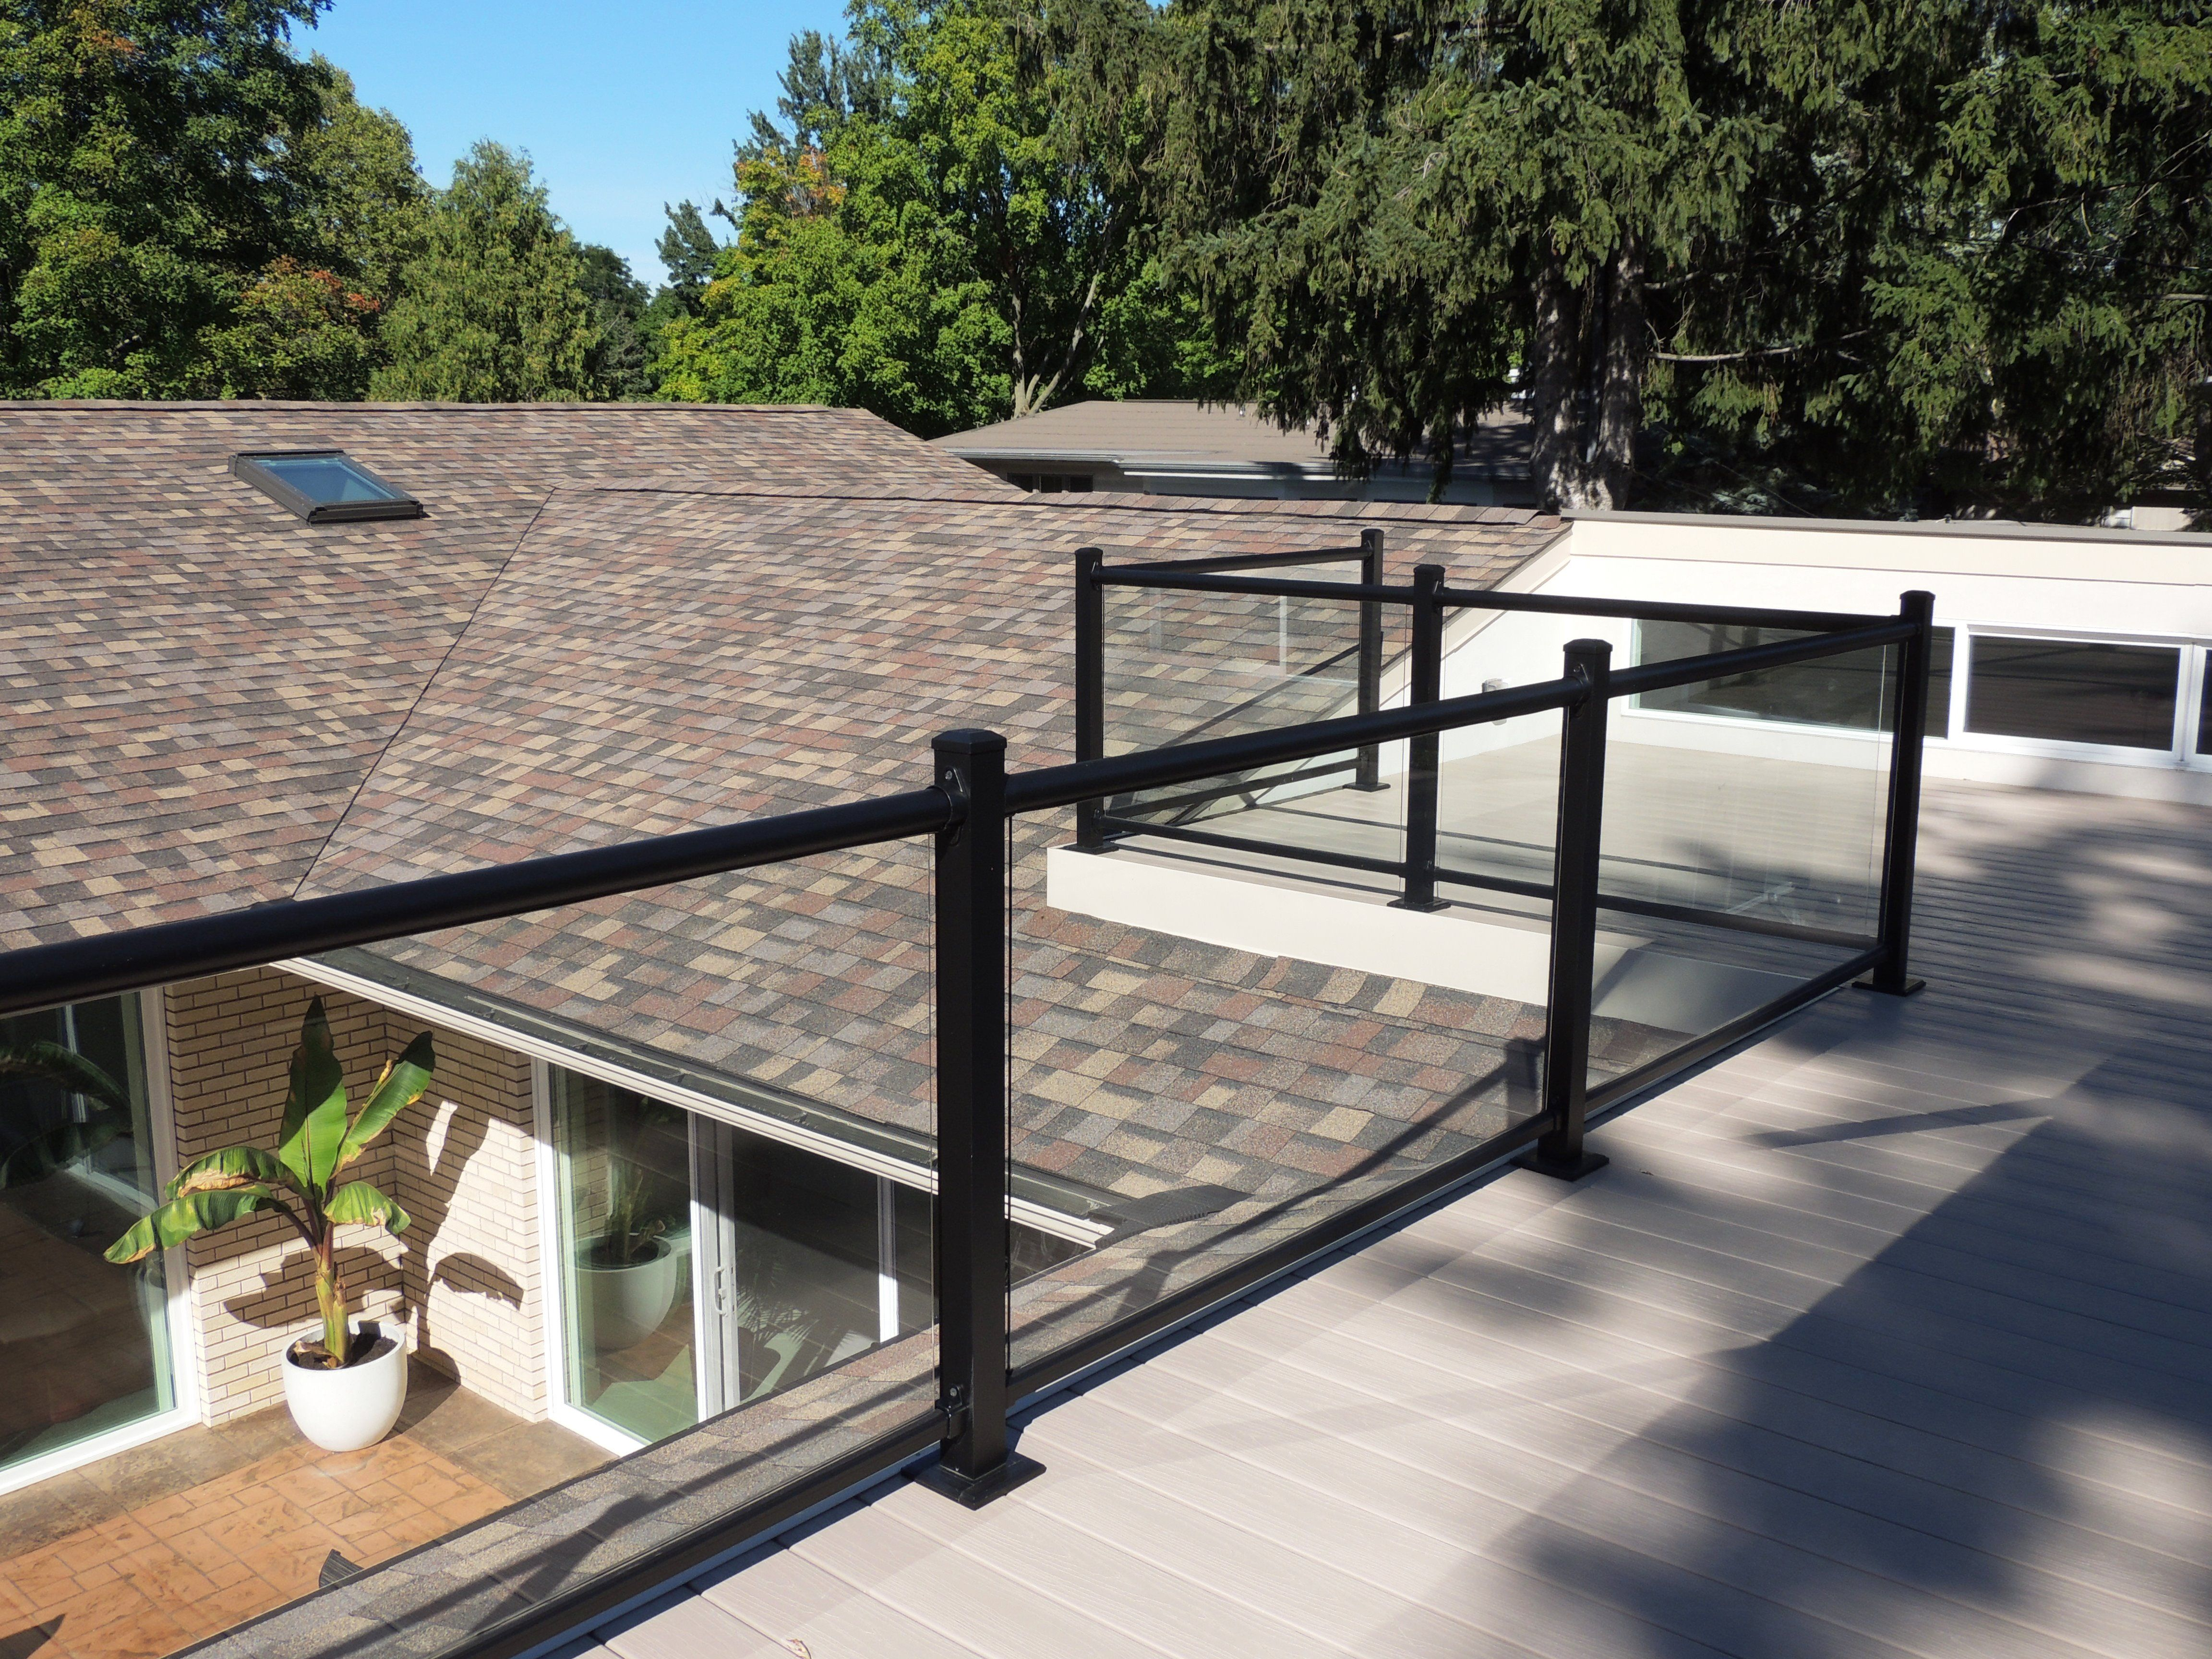 Glass railings for decks - Ornamental Glass Railing On Top Of Roof Top Deck